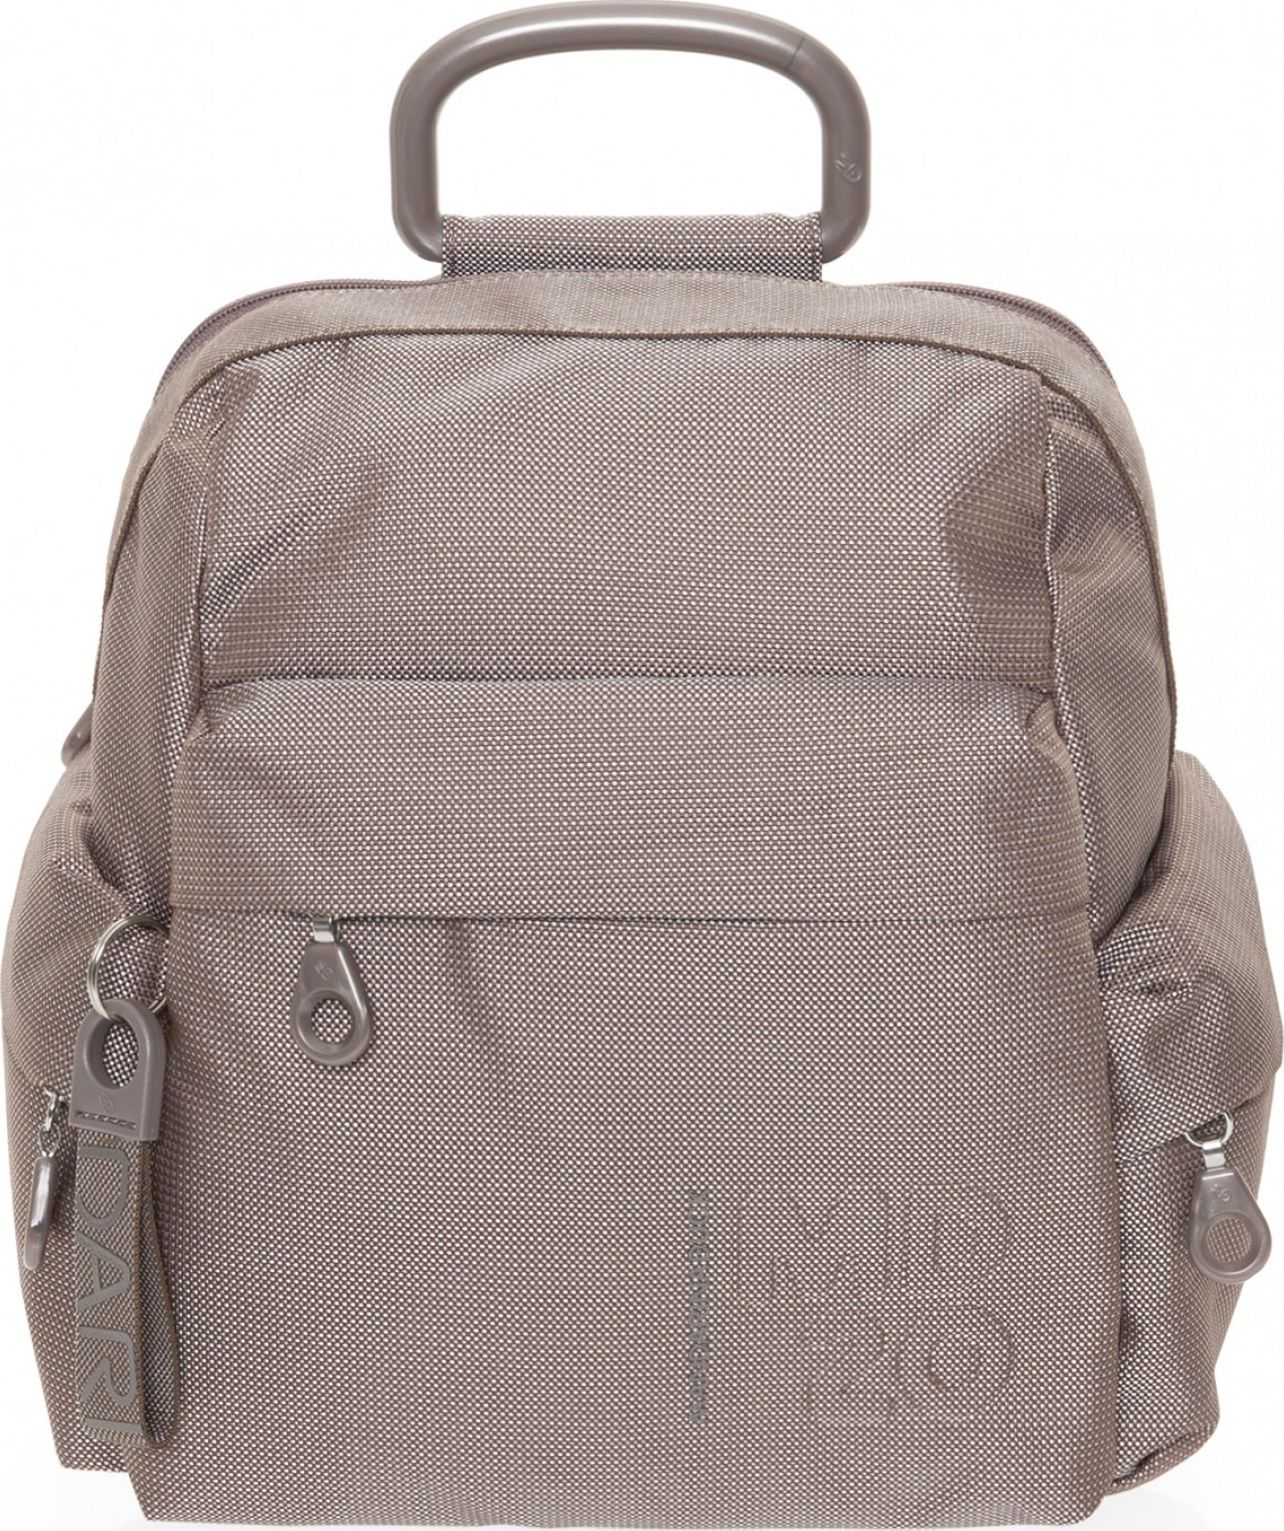 Mandarina Duck MD20 Tracolla P10QMTT1 Taupe One Size